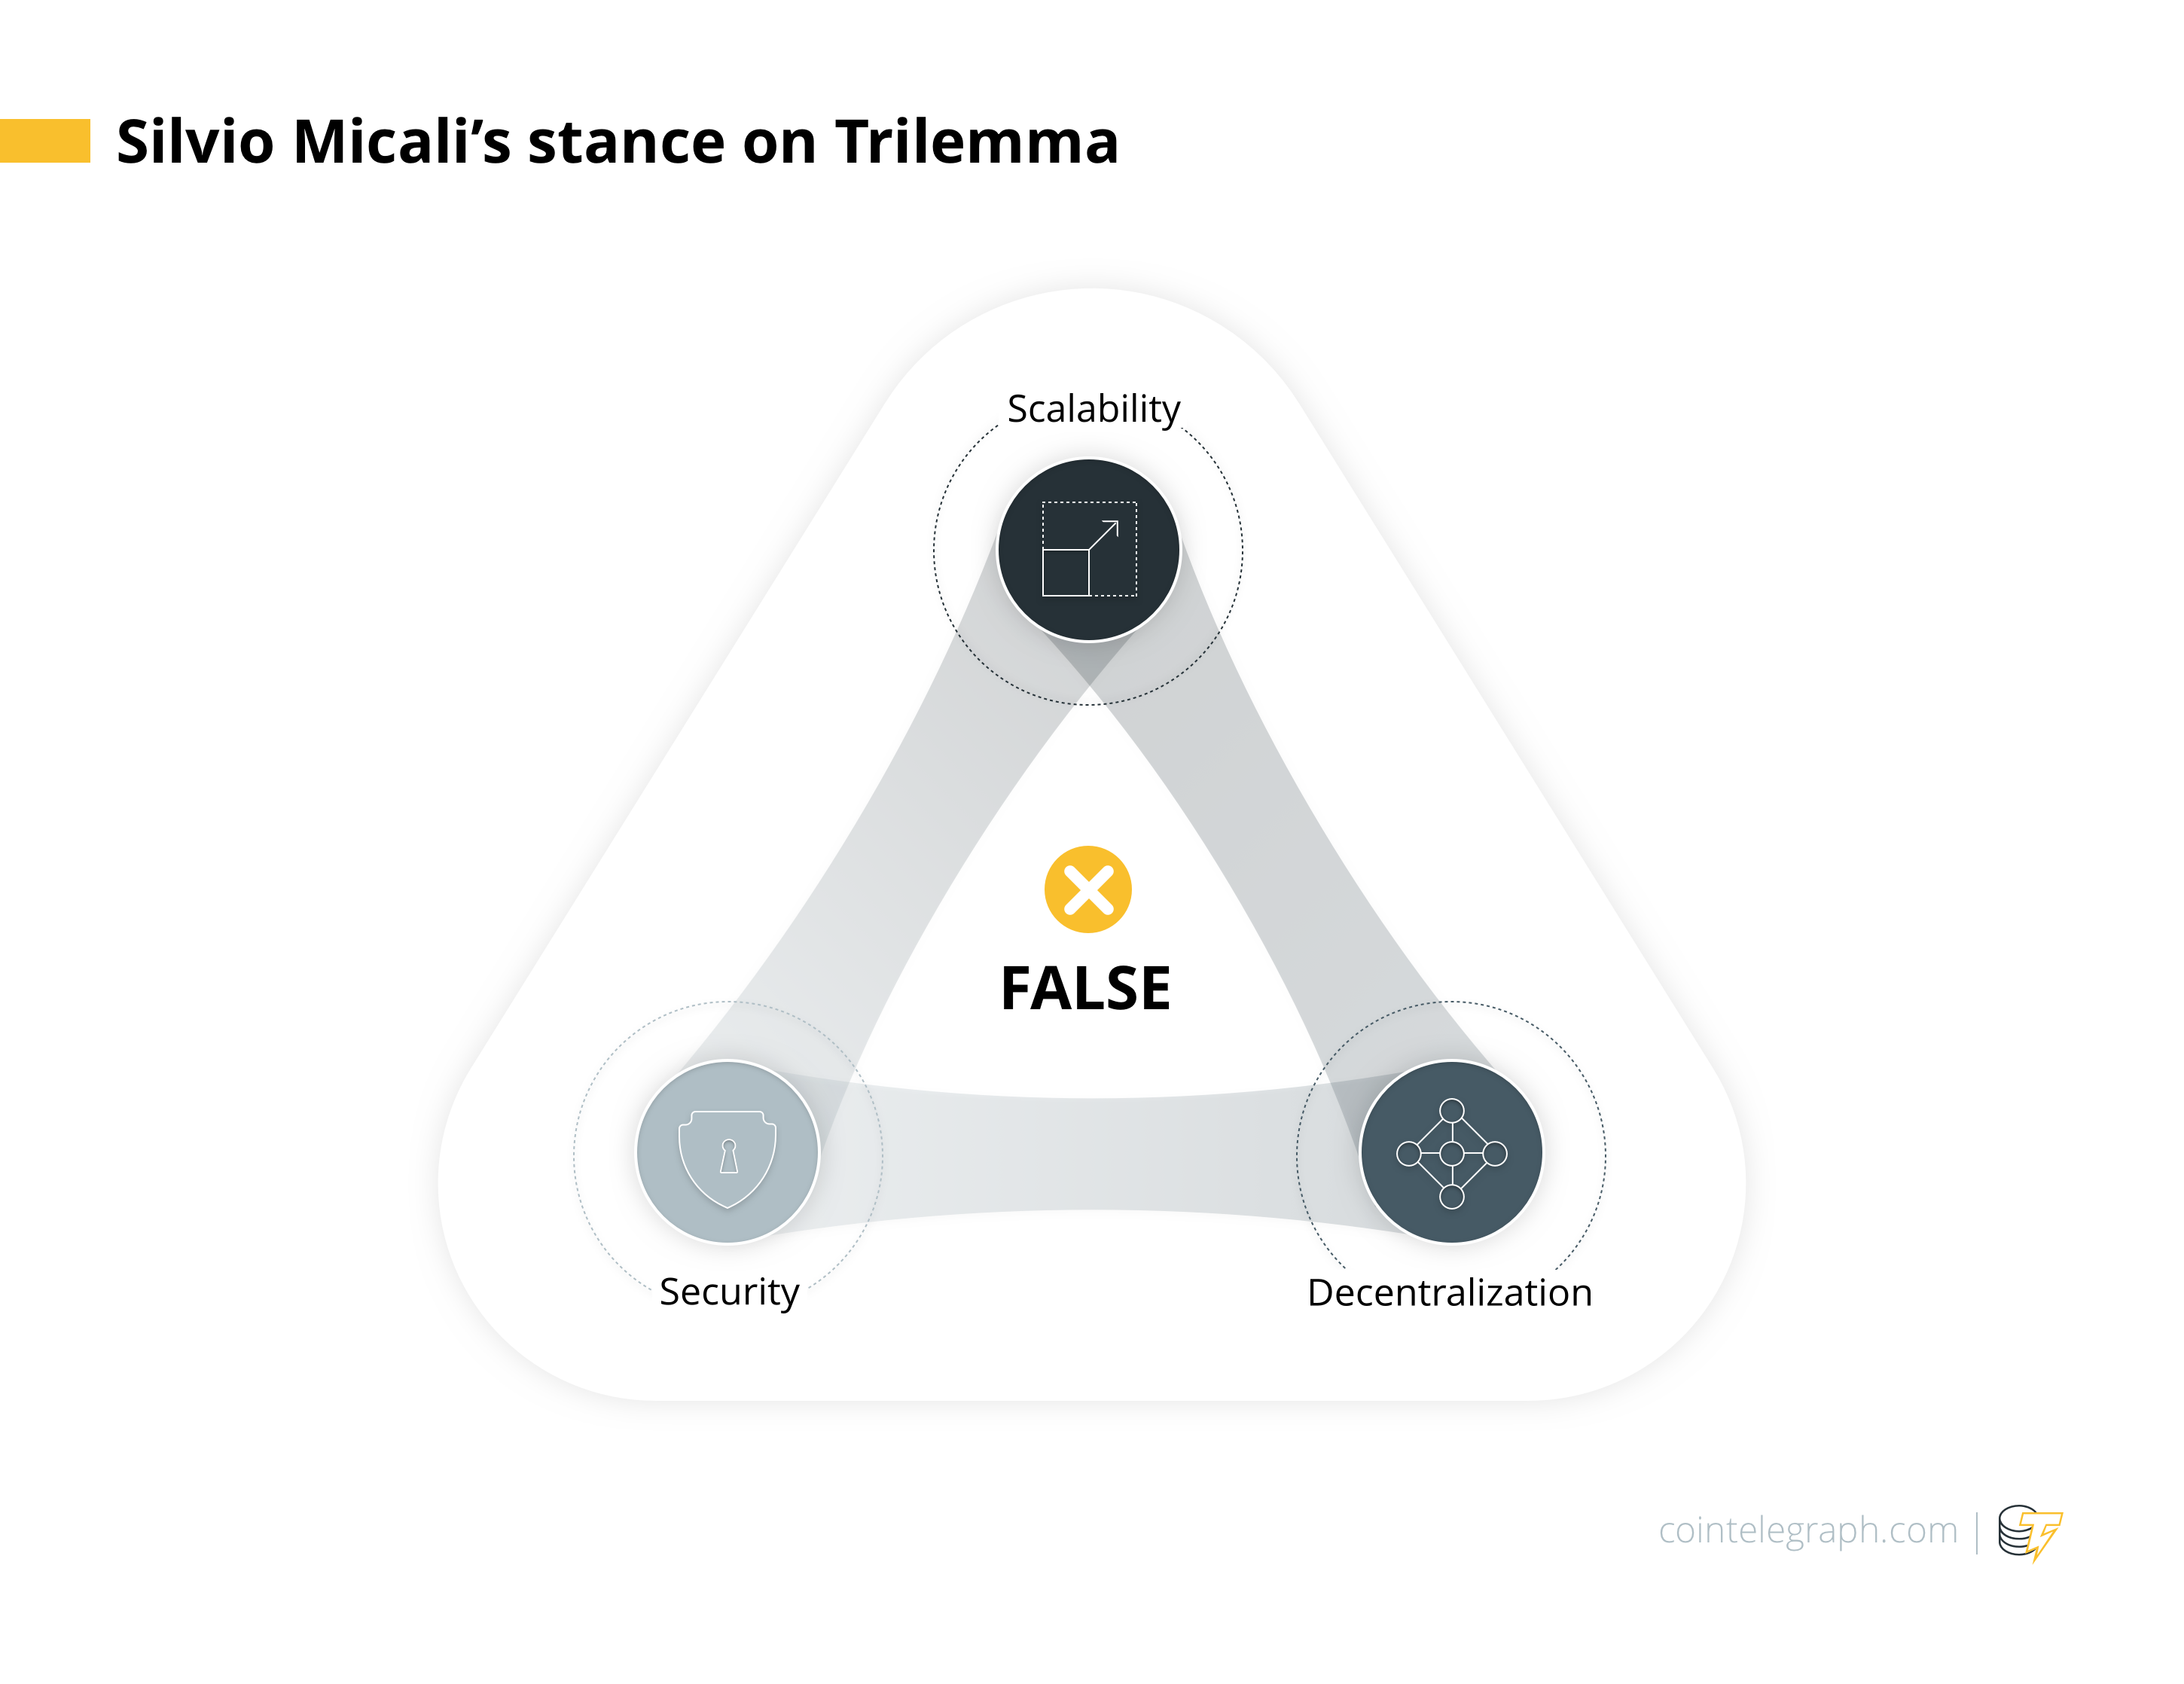 Silvio Micali's stance on Trilemma